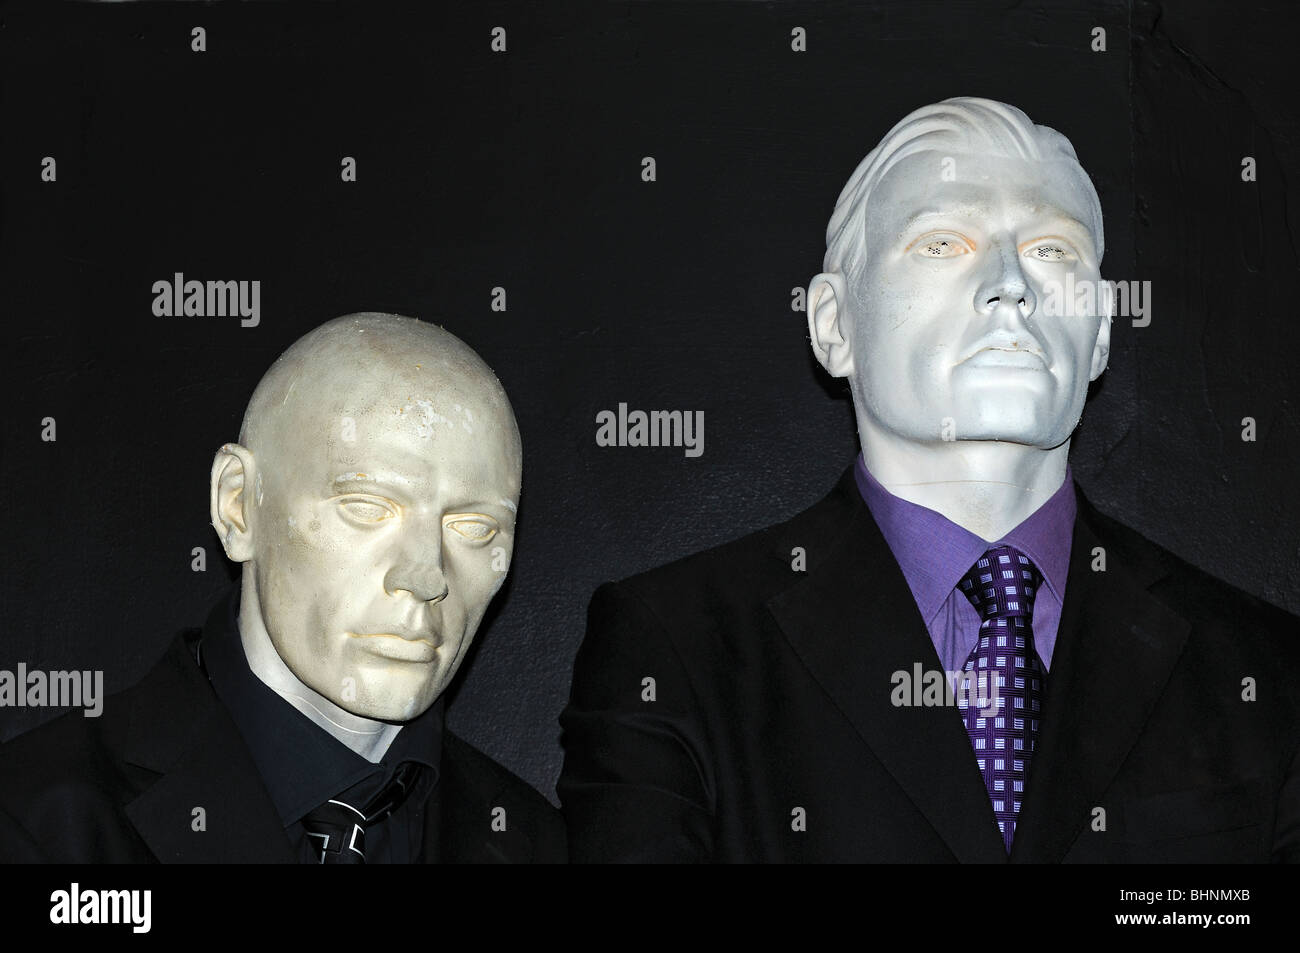 the plastic people from an episode of Dr.Who - Stock Image